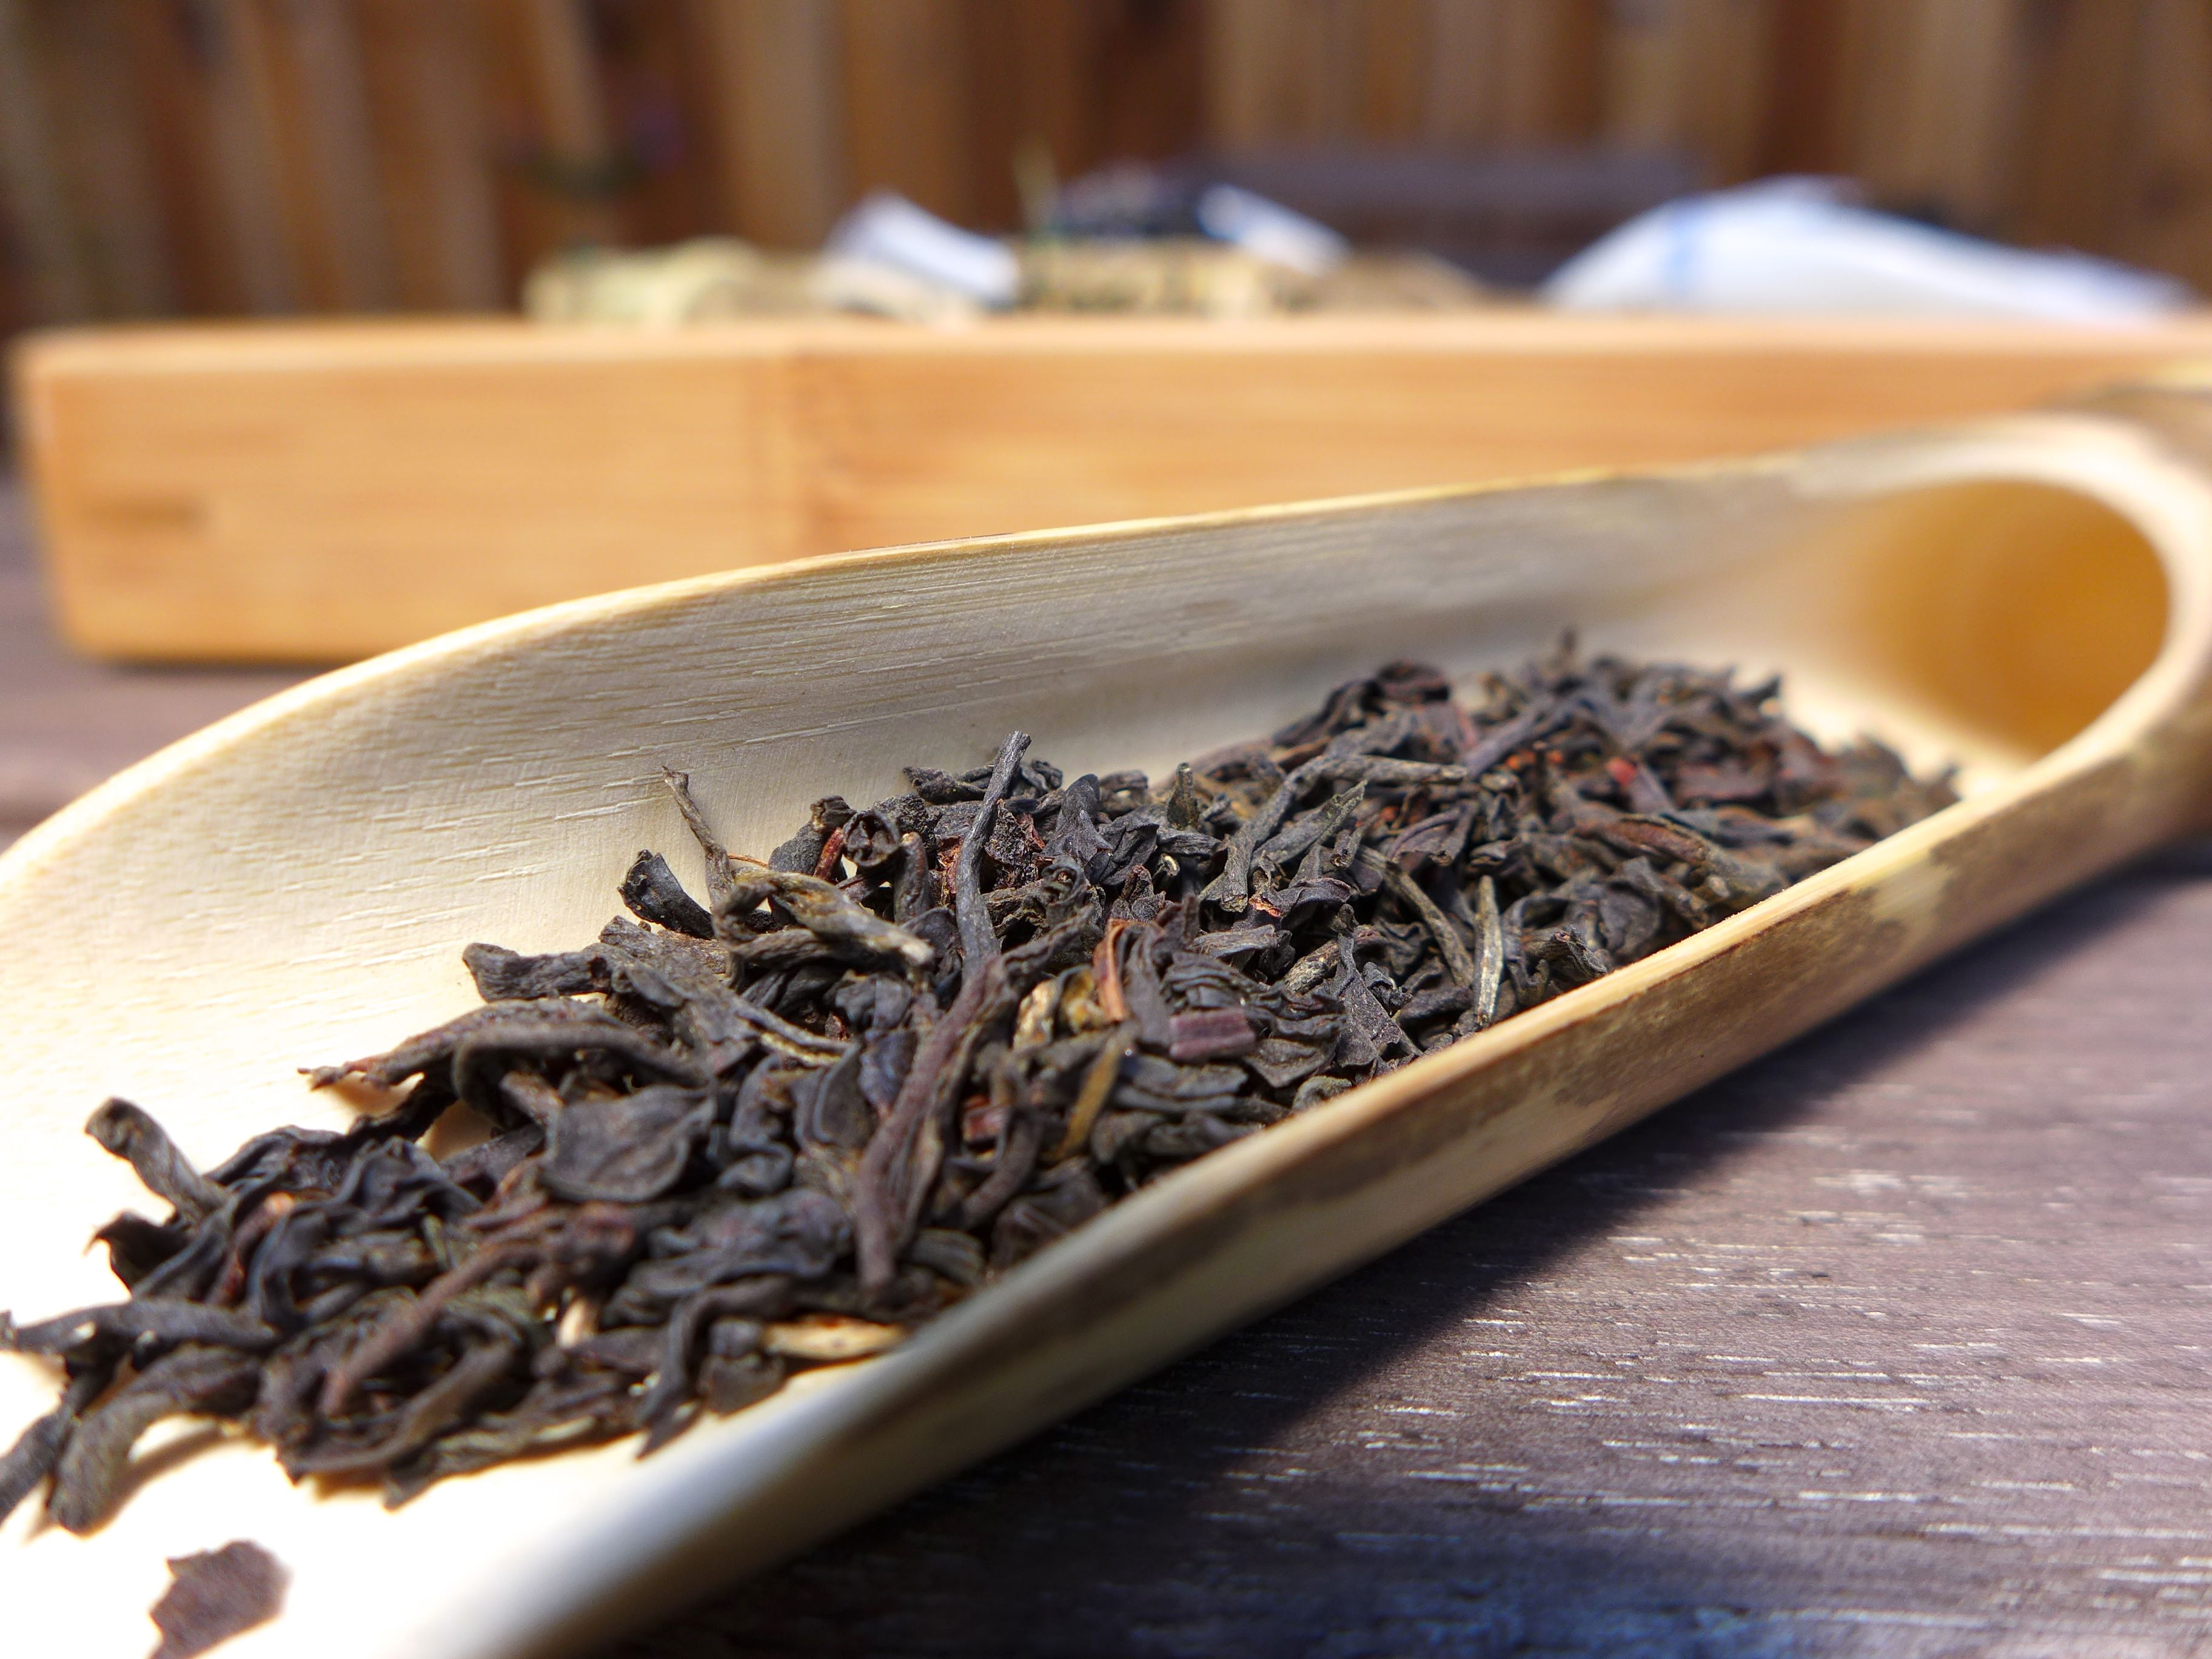 Assam is a black tea named after the region of its